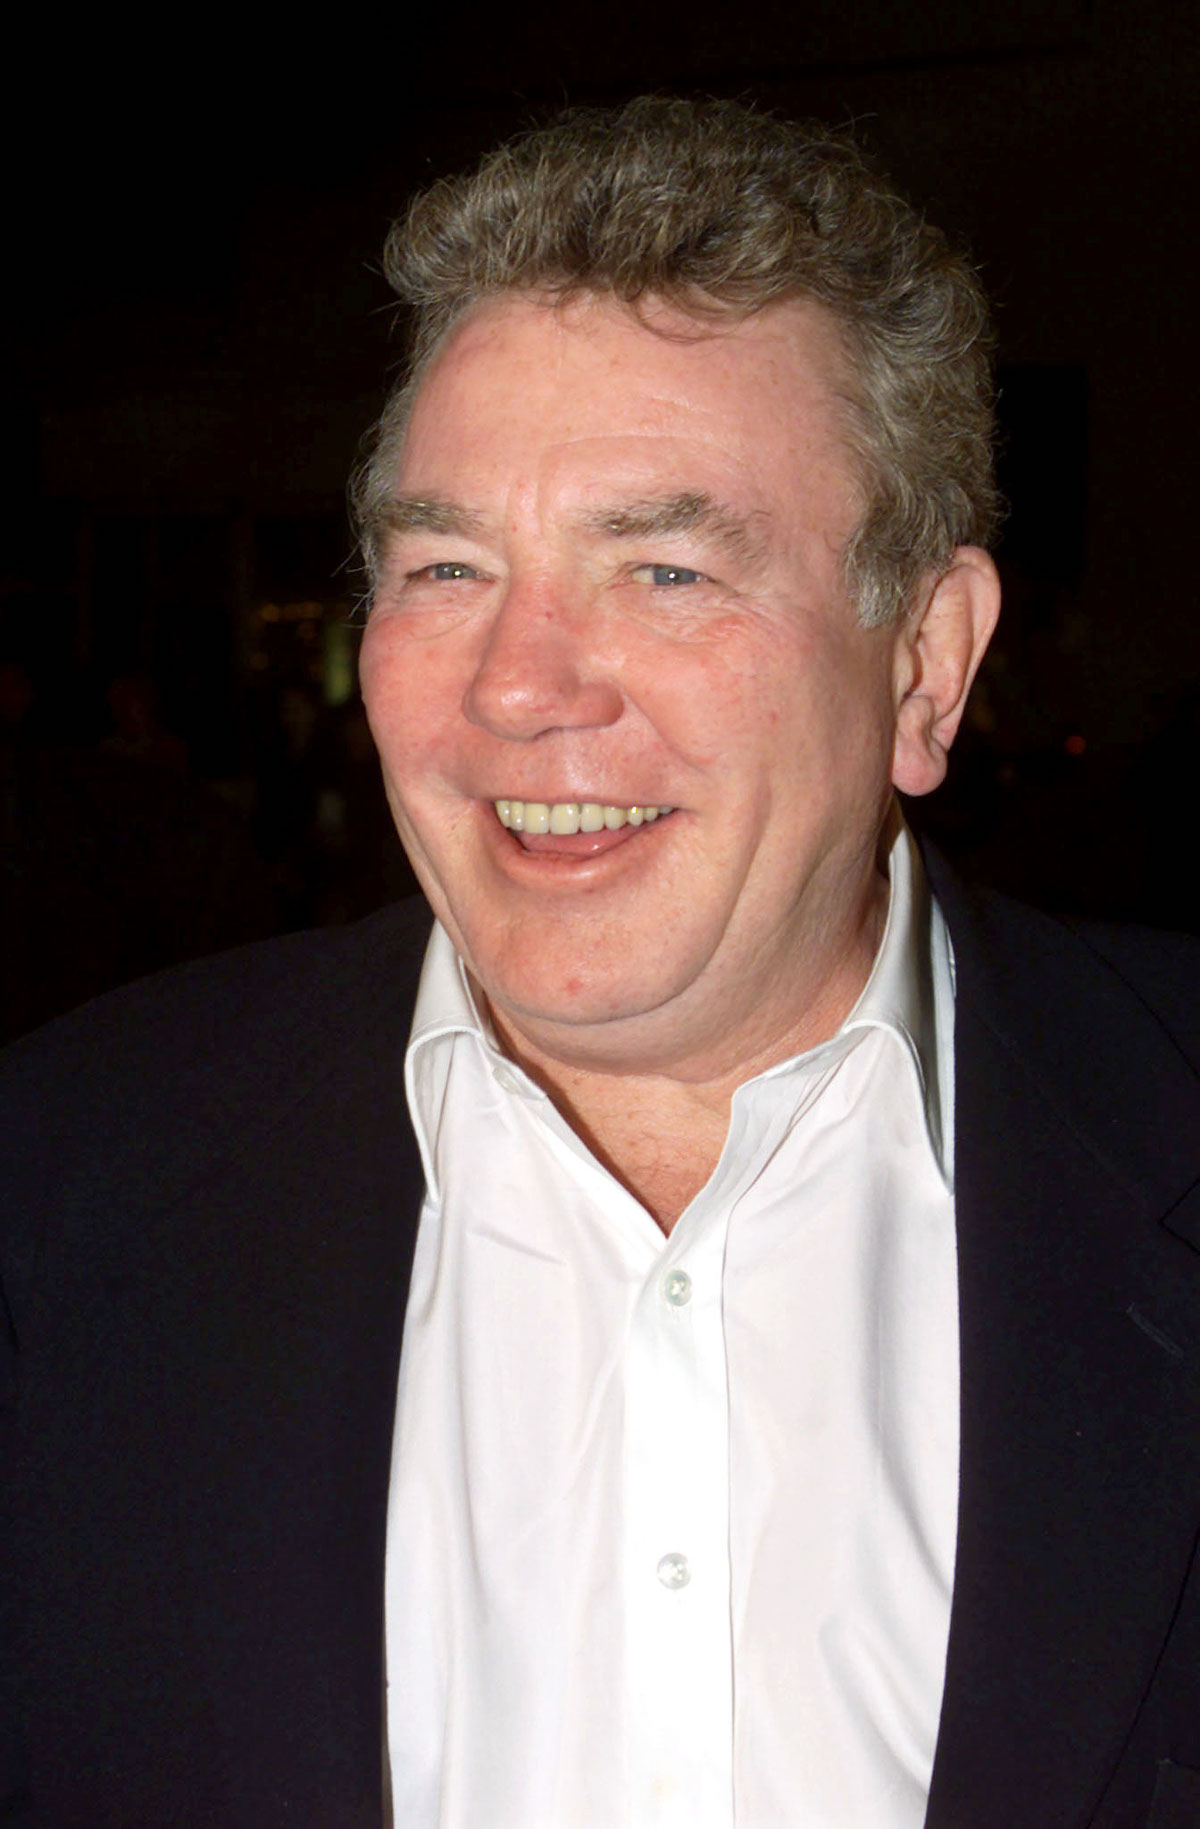 "Actor Albert Finney, one of the stars of the new film "" Erin Brockovich"", arrives for the film's premiere March 14 in Los Angeles. The film, based on a true story, is about a woman who brought a small town to its feet and a huge company to its knees, after discovering the town was using contaminated water. Finney portrays attorney Ed Masry and [Julia Roberts] portrays Erin Brockovich in the film. - Media: Reuters/ Kieran Doherty"